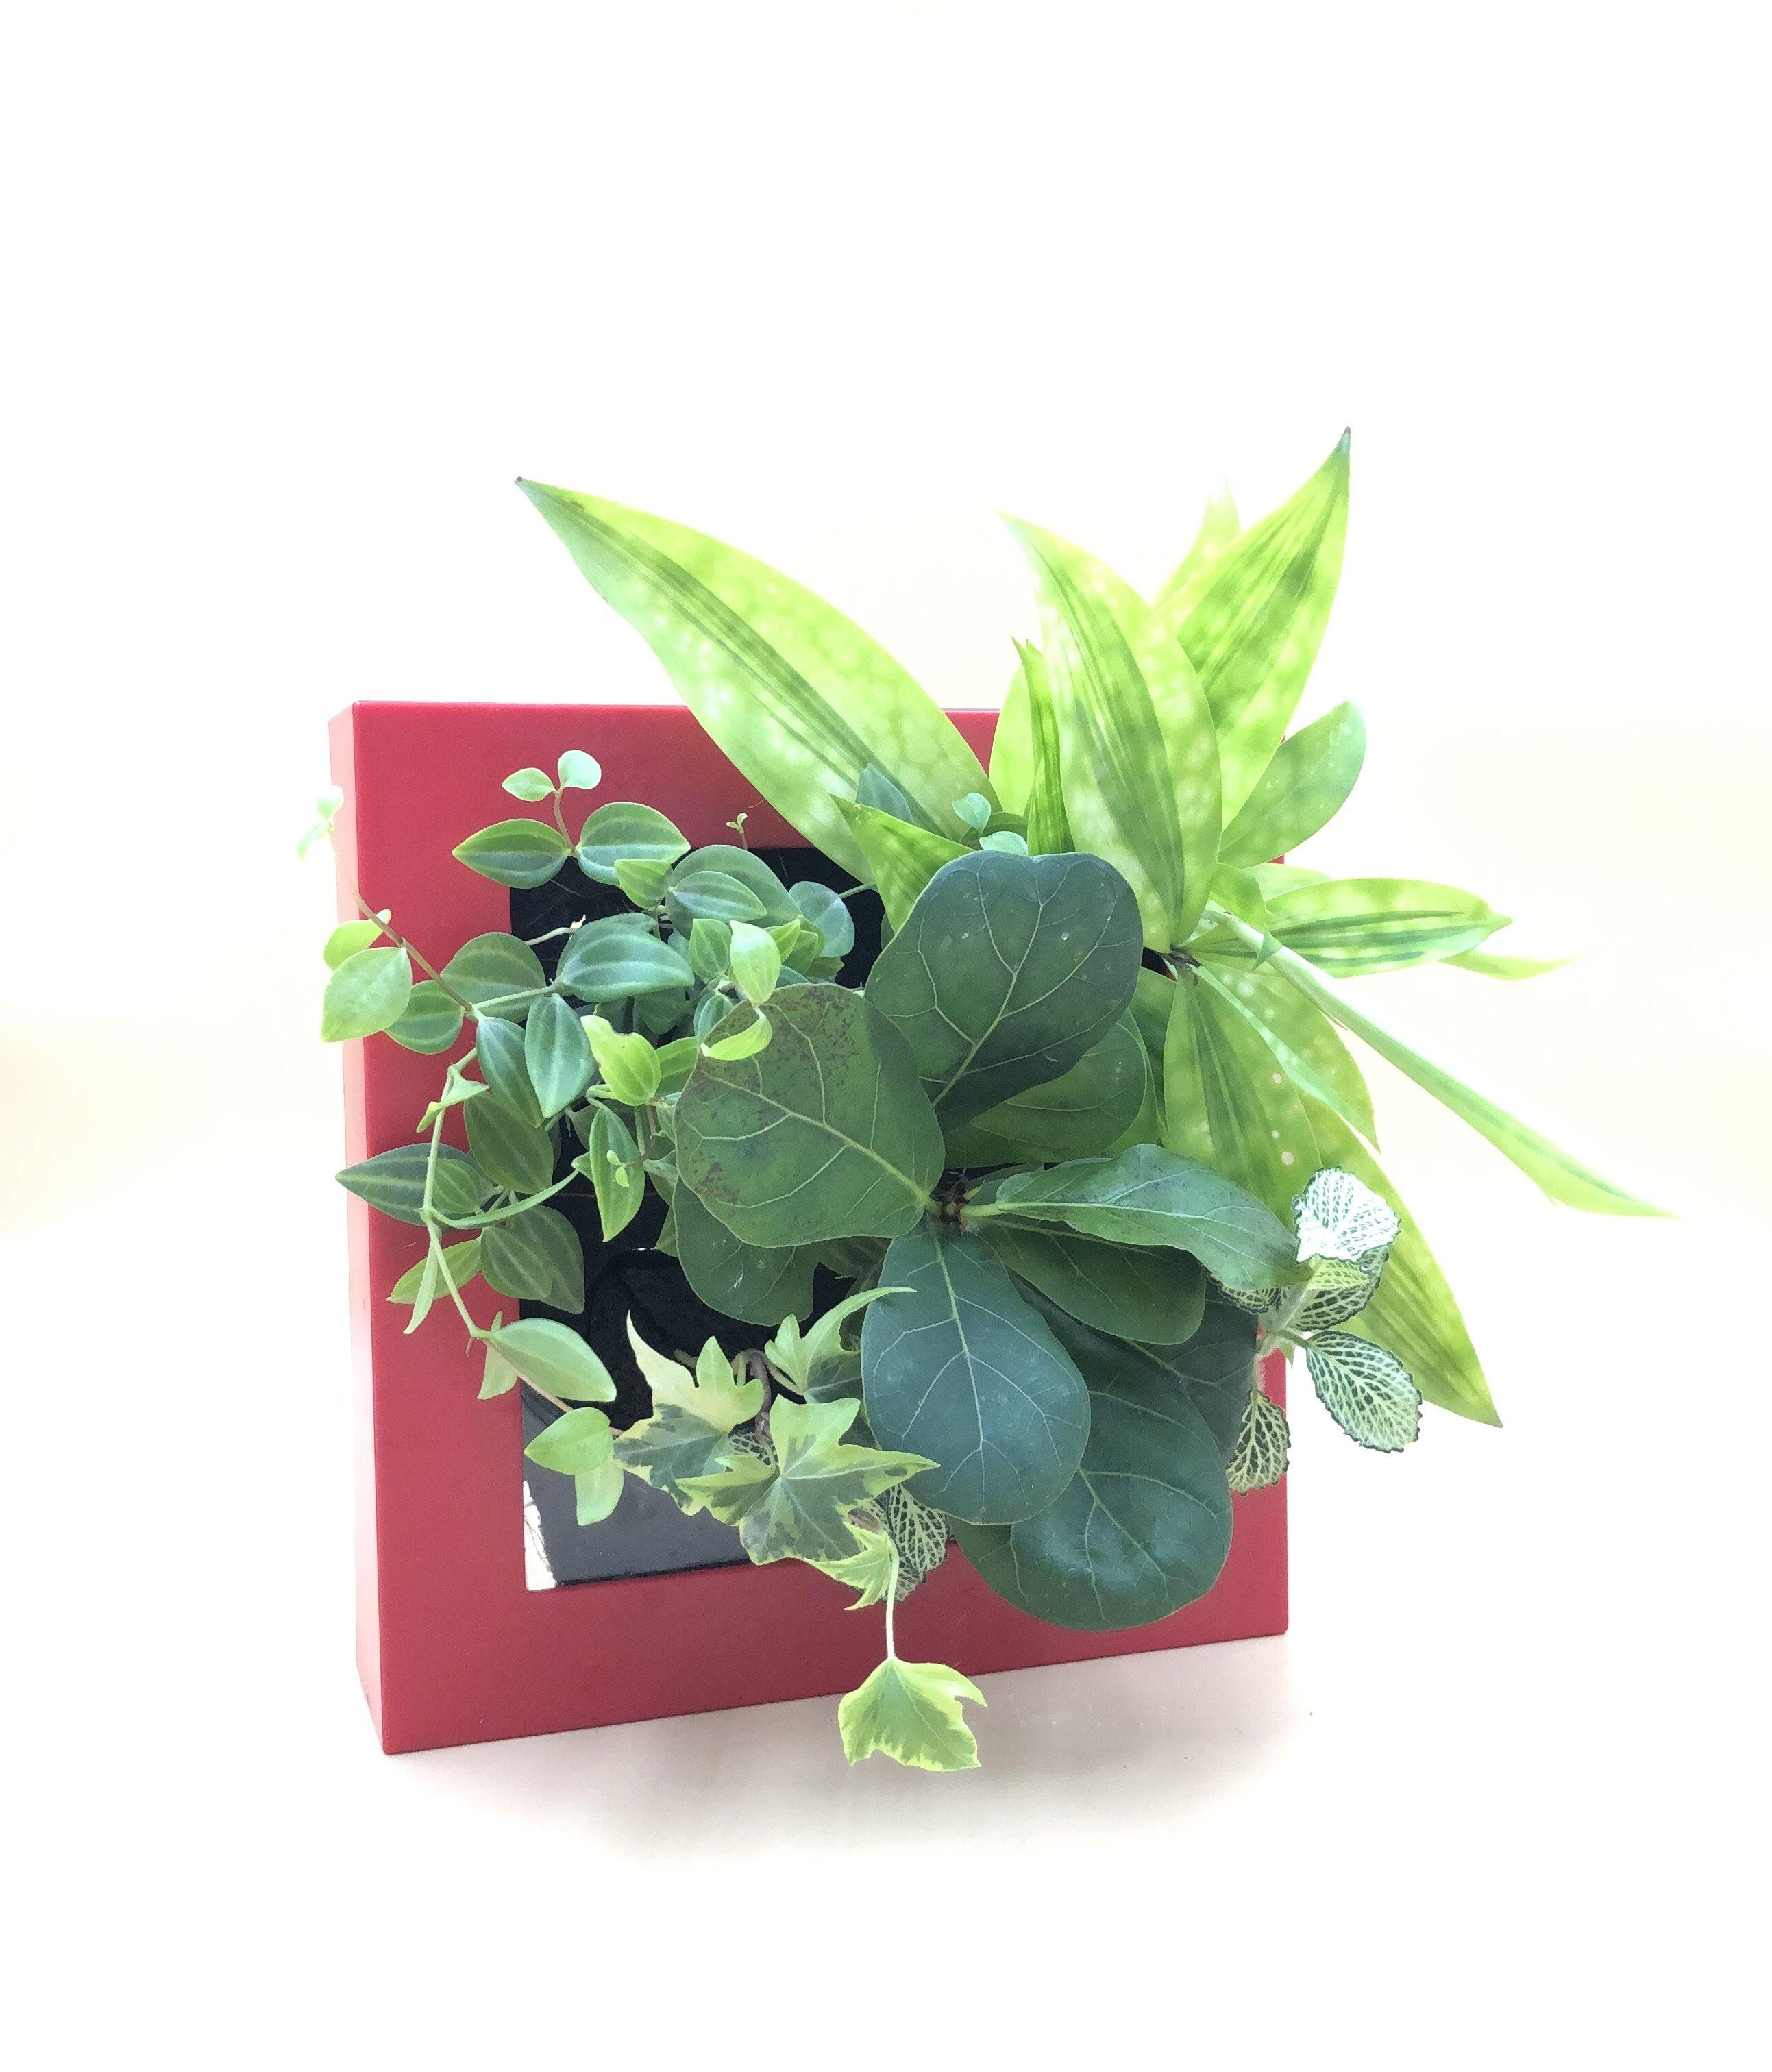 Square Frame • Red 5-Plant (SN: #0379) - Midorie Singapore